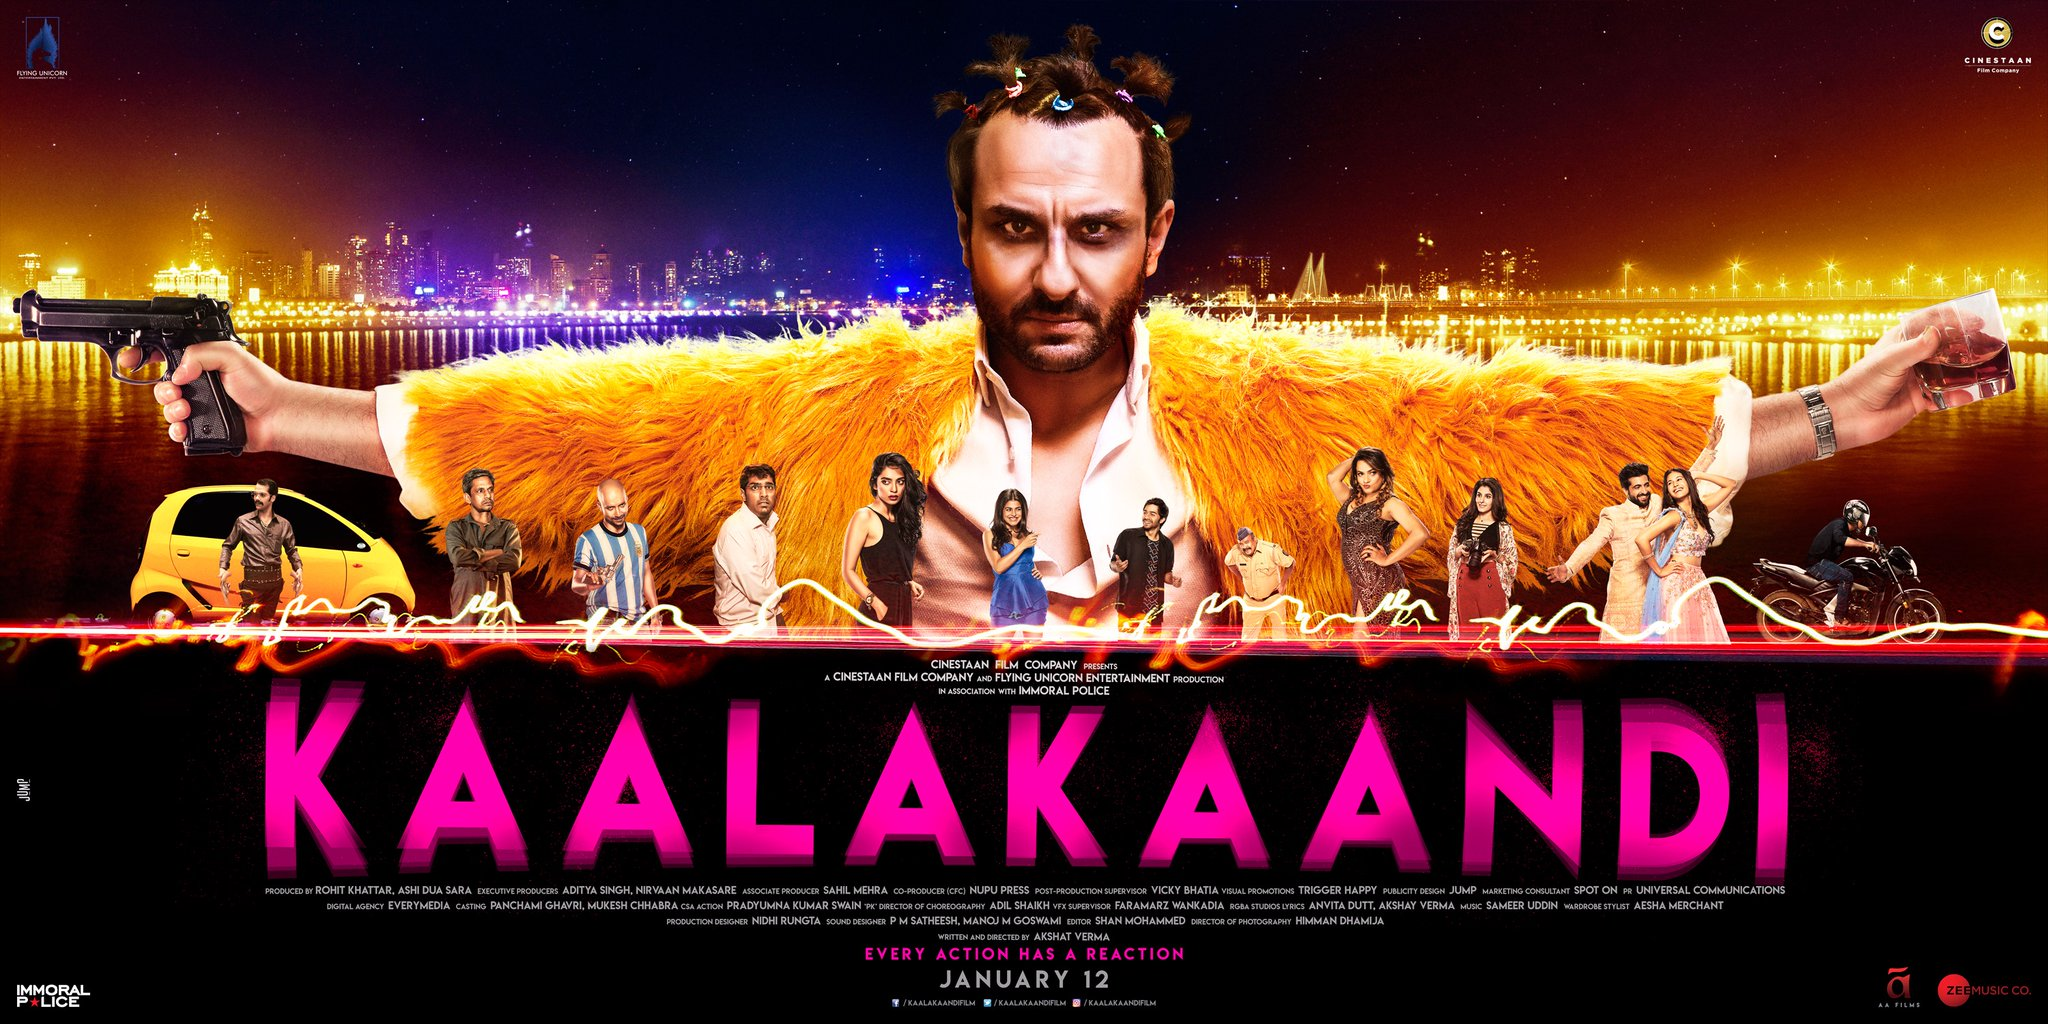 Saif Ali Khan's 'Kaalakaandi' makes Aamir Khan laugh hard!